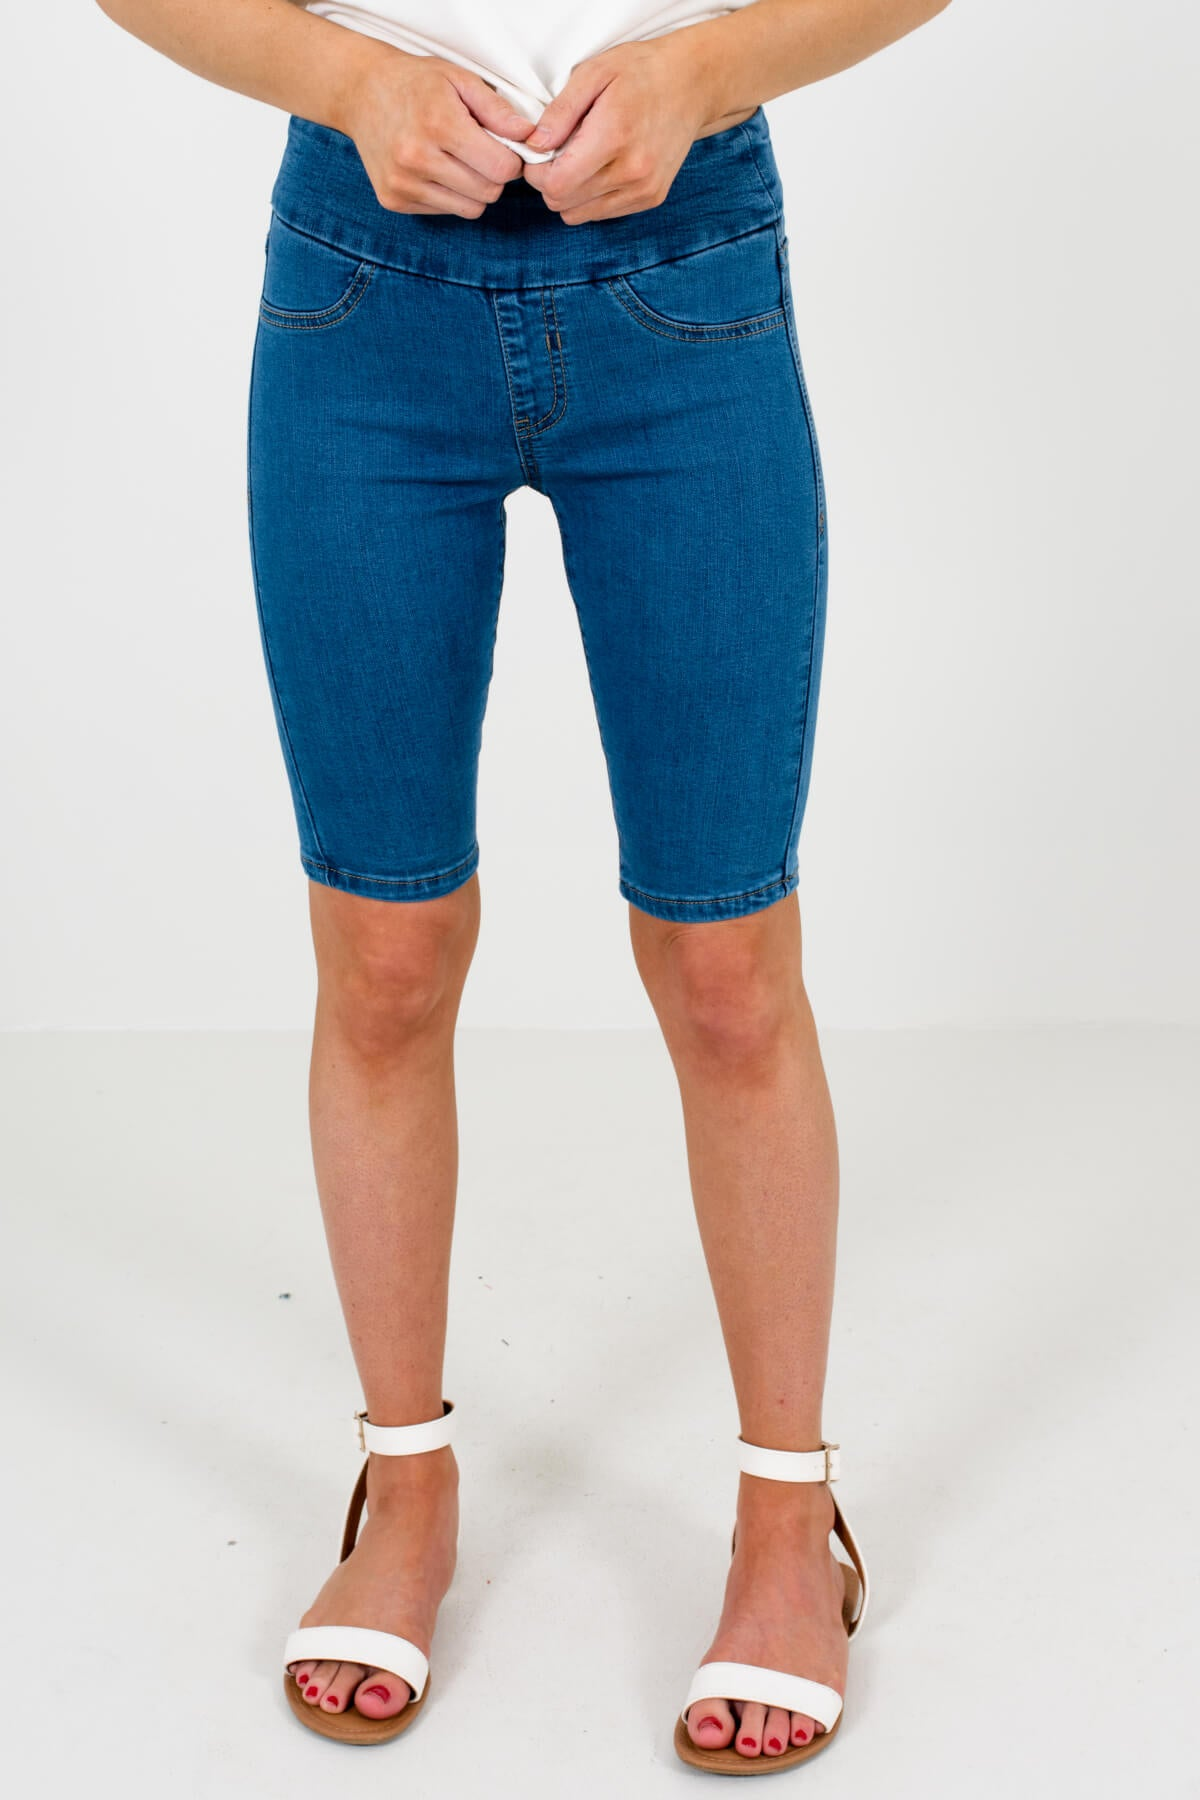 Dark Wash Denim Blue Boutique Jegging Style Shorts for Women